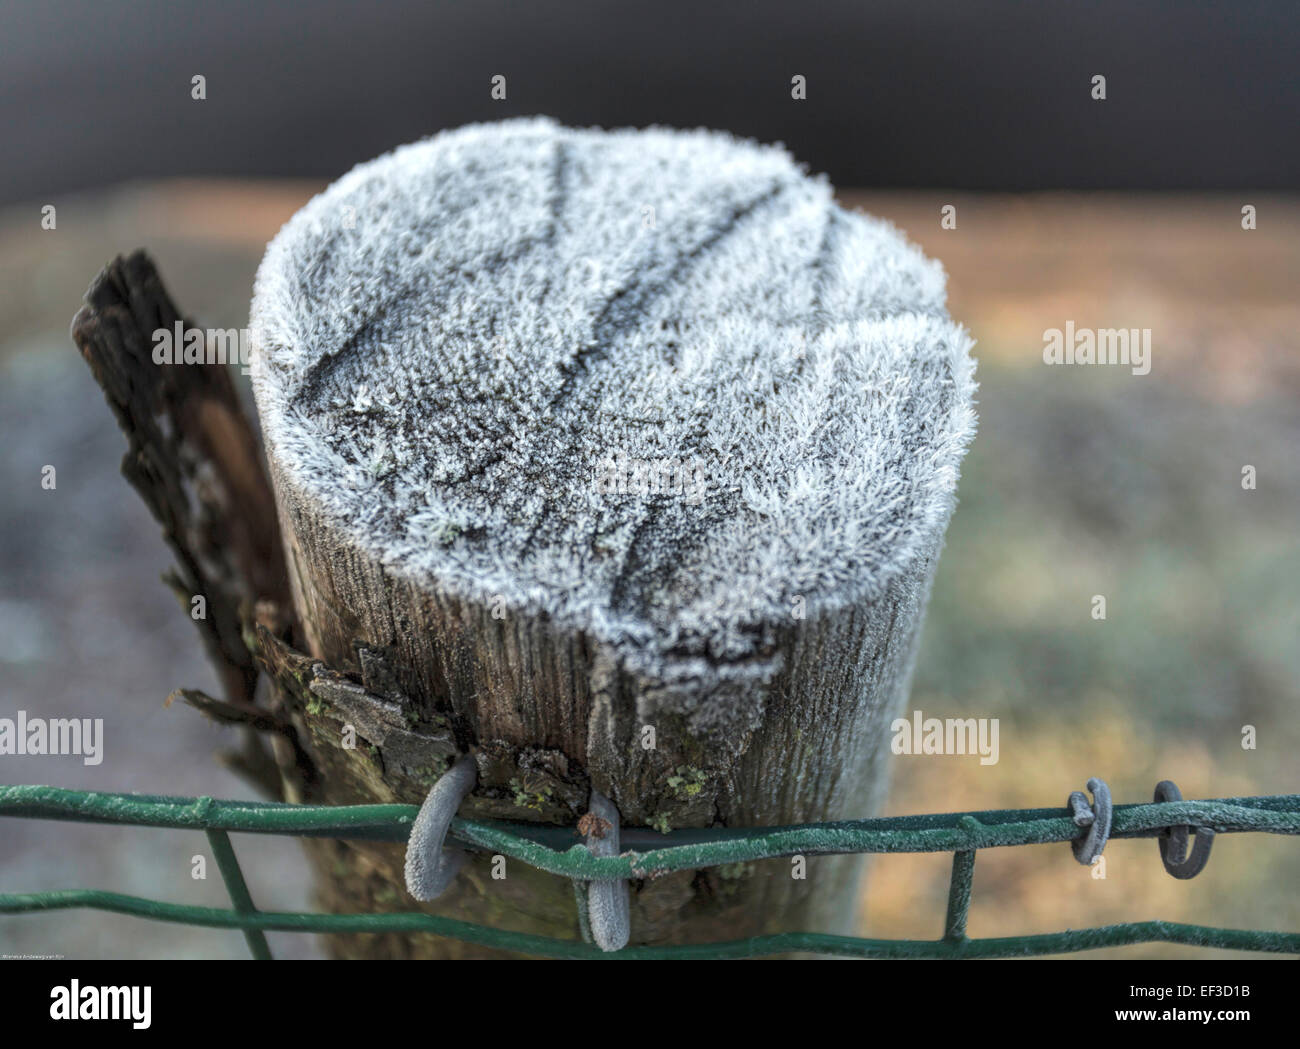 Katwijk aan Zee, South Holland, The Netherlands: Wooden pole covered by hoarforst on a Dutch winter morning. - Stock Image